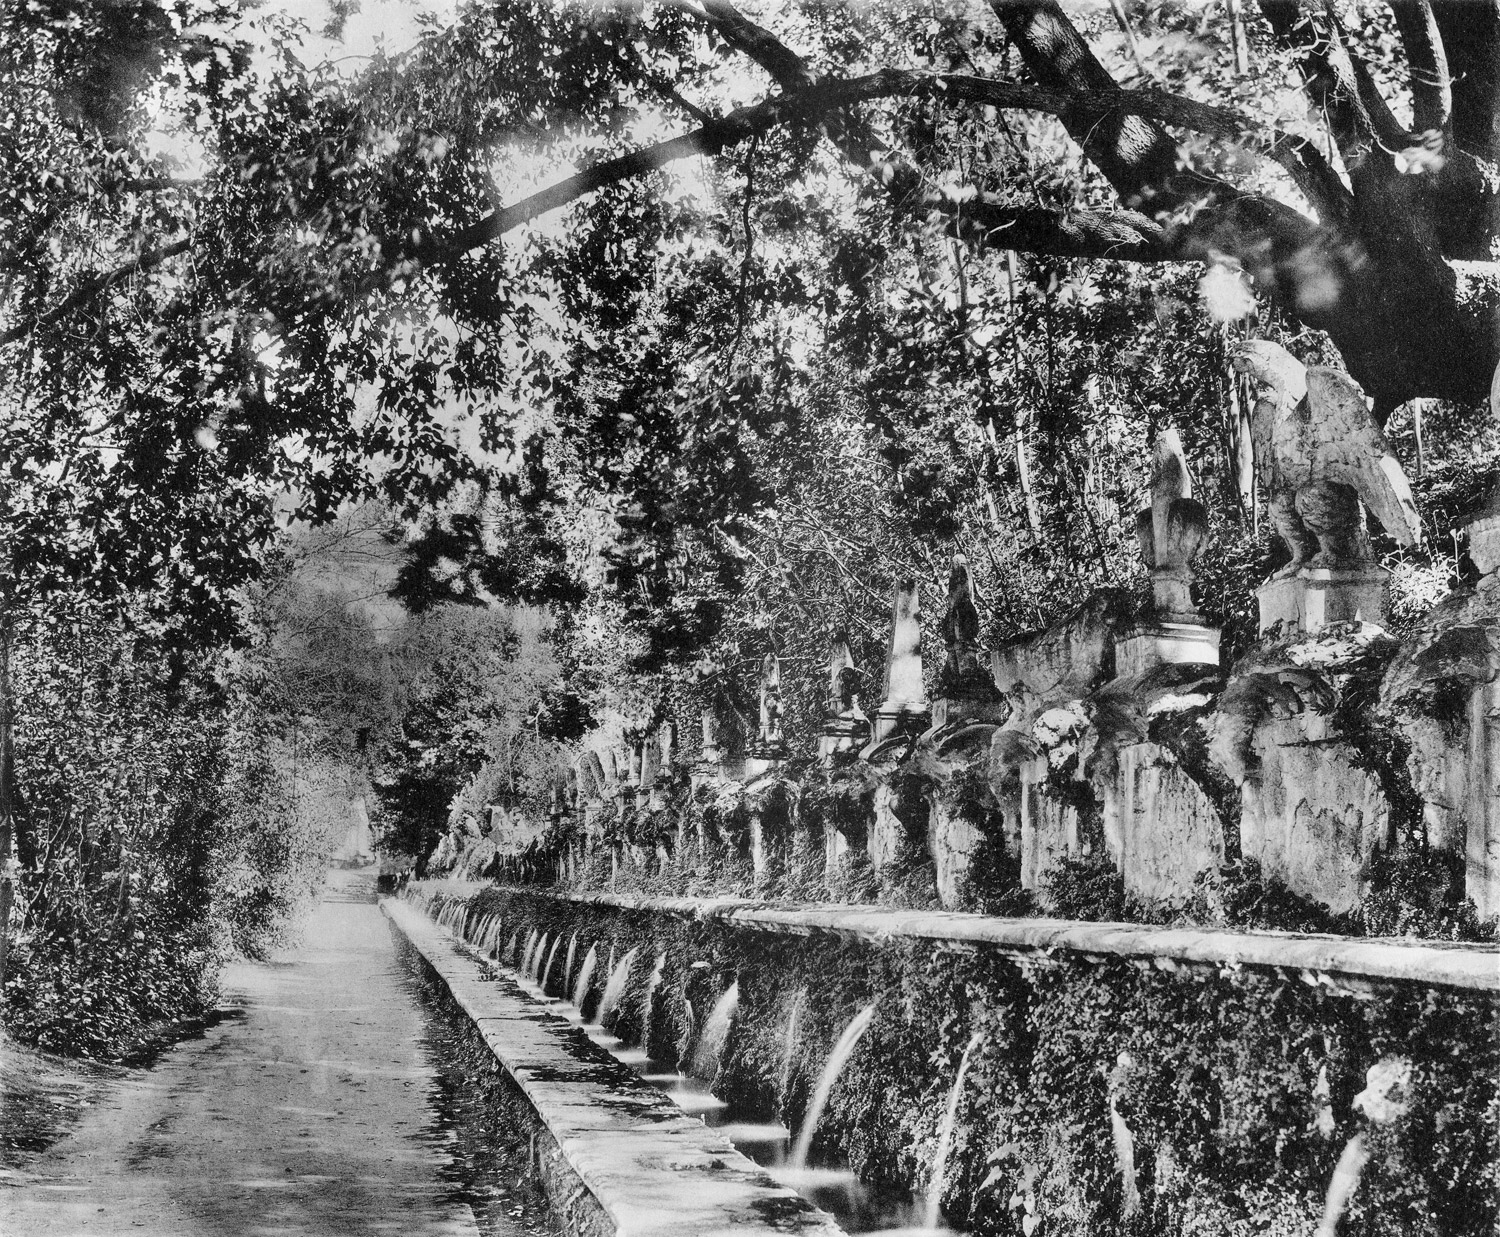 the terrace of fountains (Avenue of a Hundred Fountains) at Villa D'Este, from The Art of Garden Design in Italy by H. Inigo Triggs, 1906.